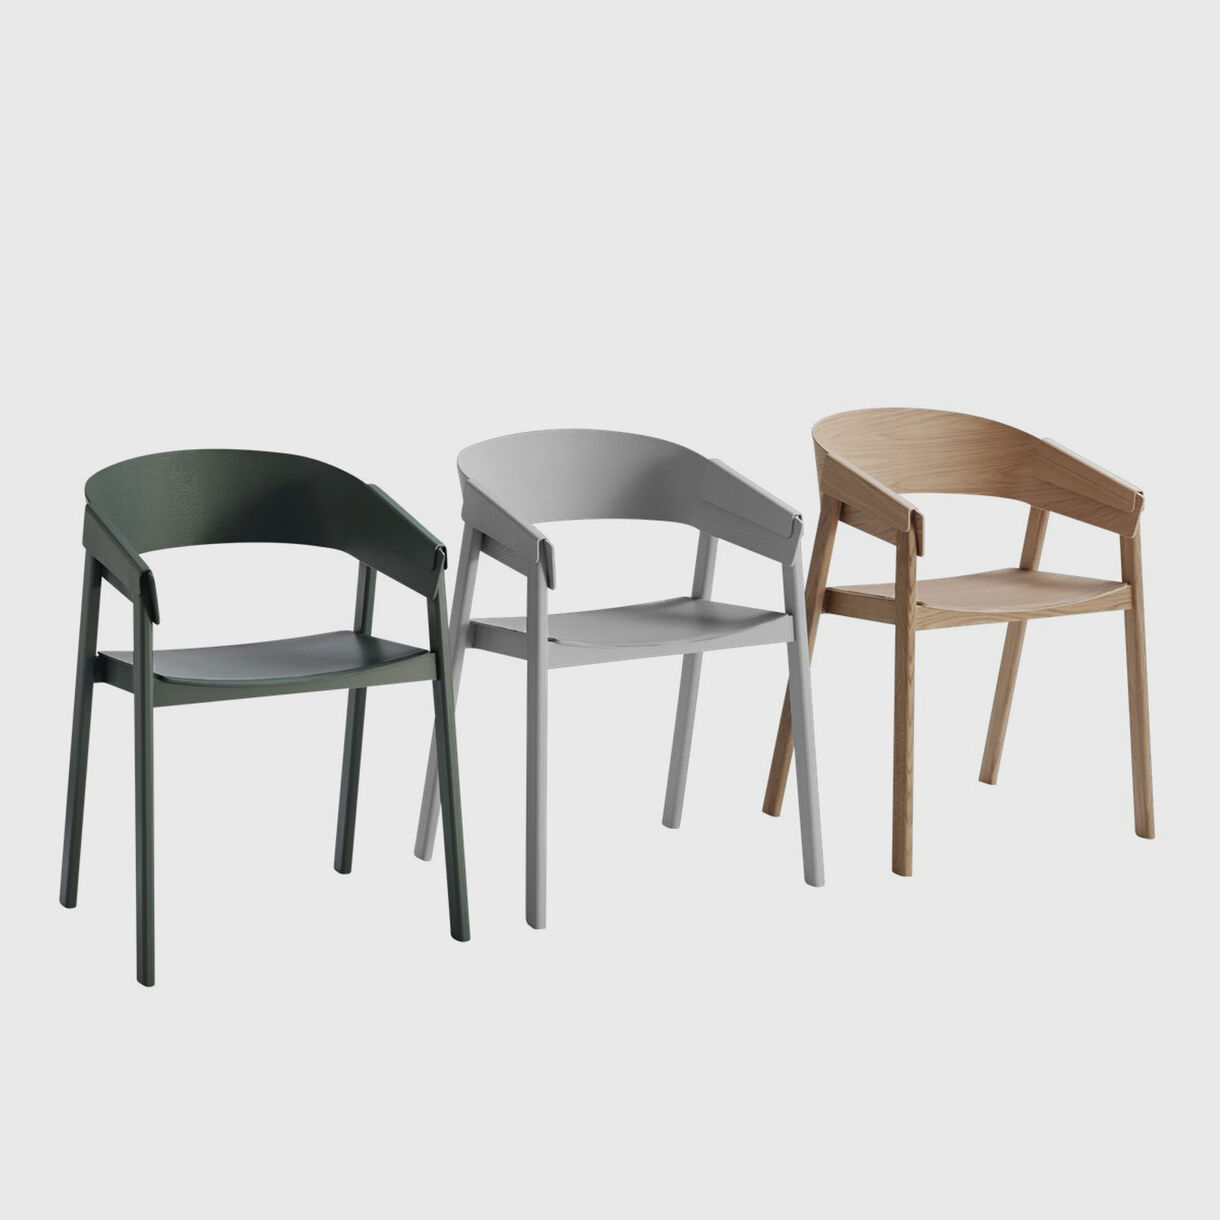 Cover Chairs, Group